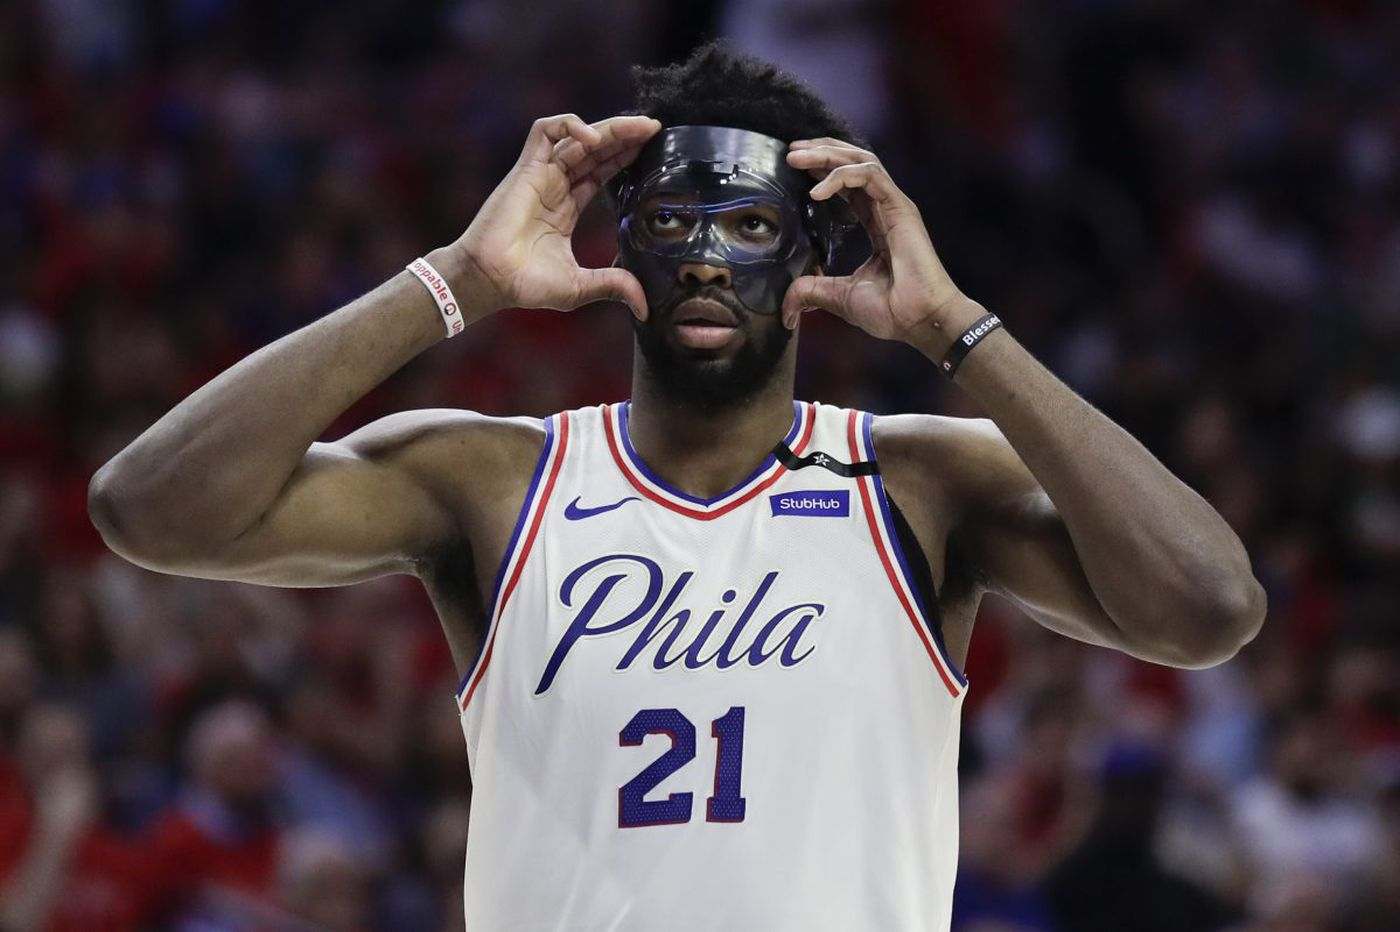 Sixers' Joel Embiid's playground antics could cost him part of his contract if he gets hurt